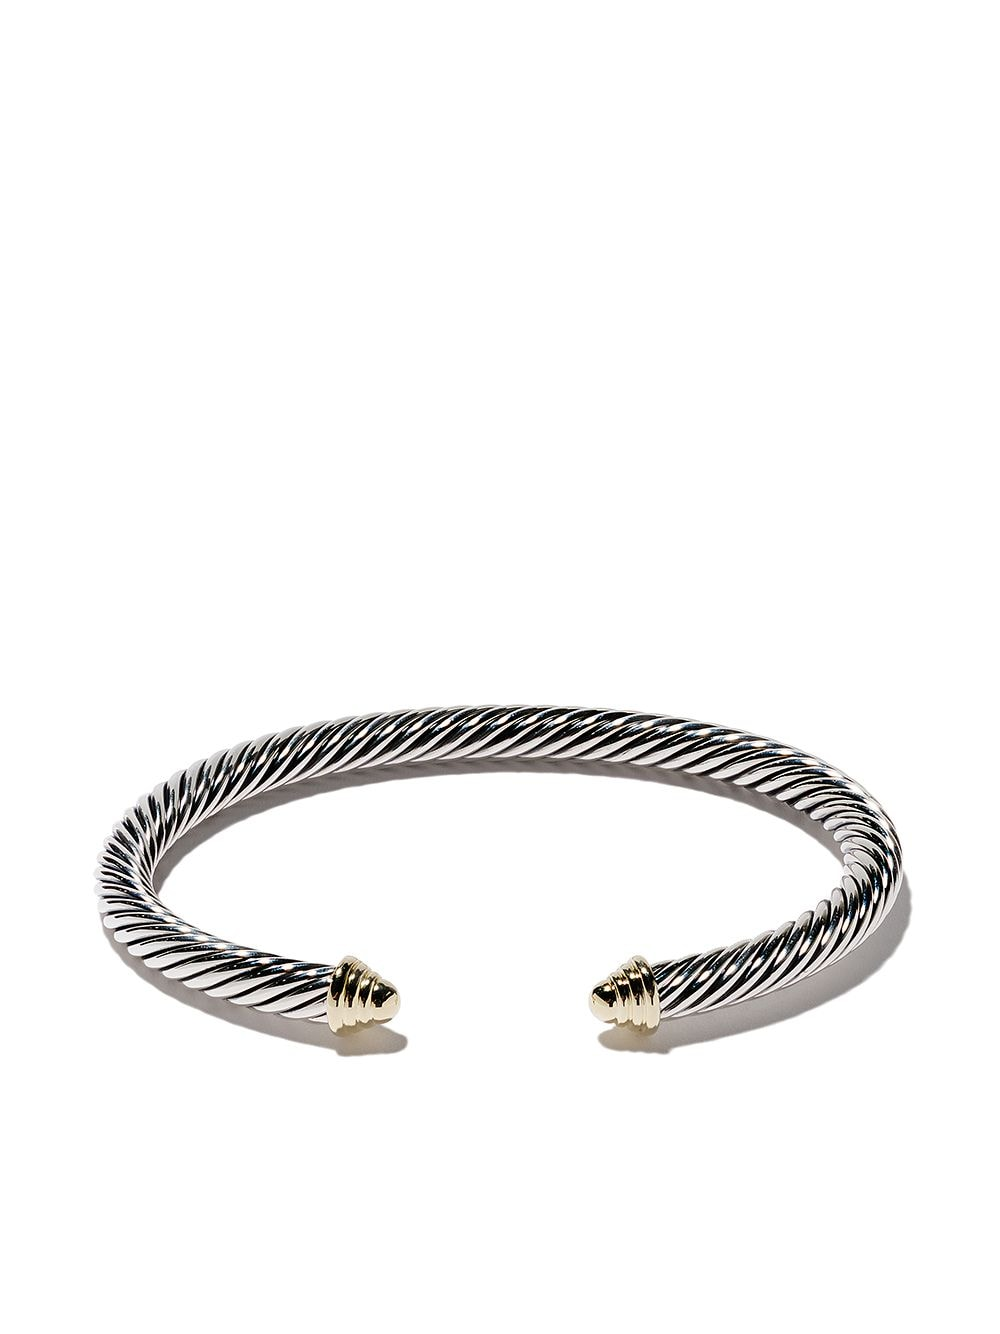 David Yurman Cable Classics sterling silver & 14kt yellow gold accented cuff bracelet - S4 von David Yurman